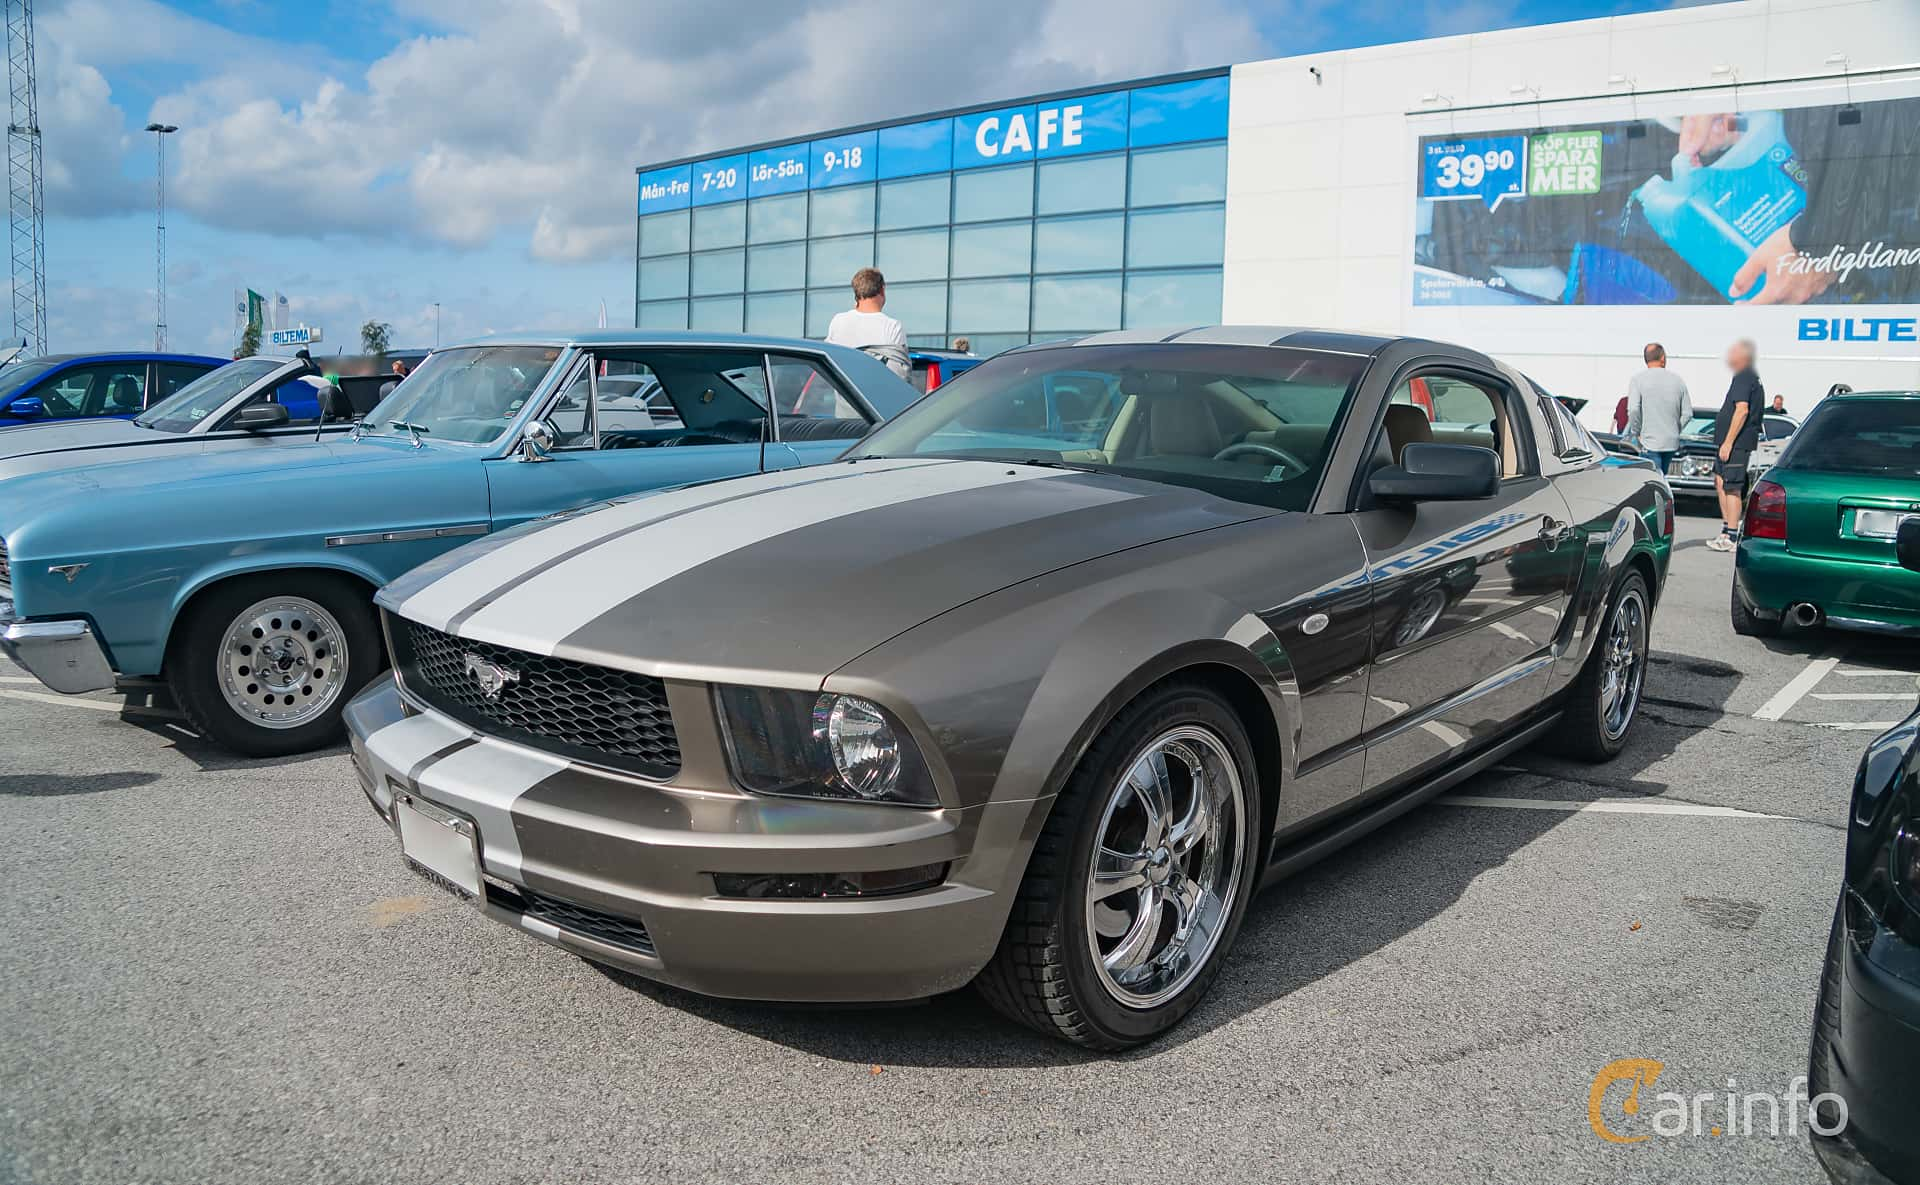 2 images of ford mustang 4 0 v6 automatic 213hp 2005 by marcusliedholm